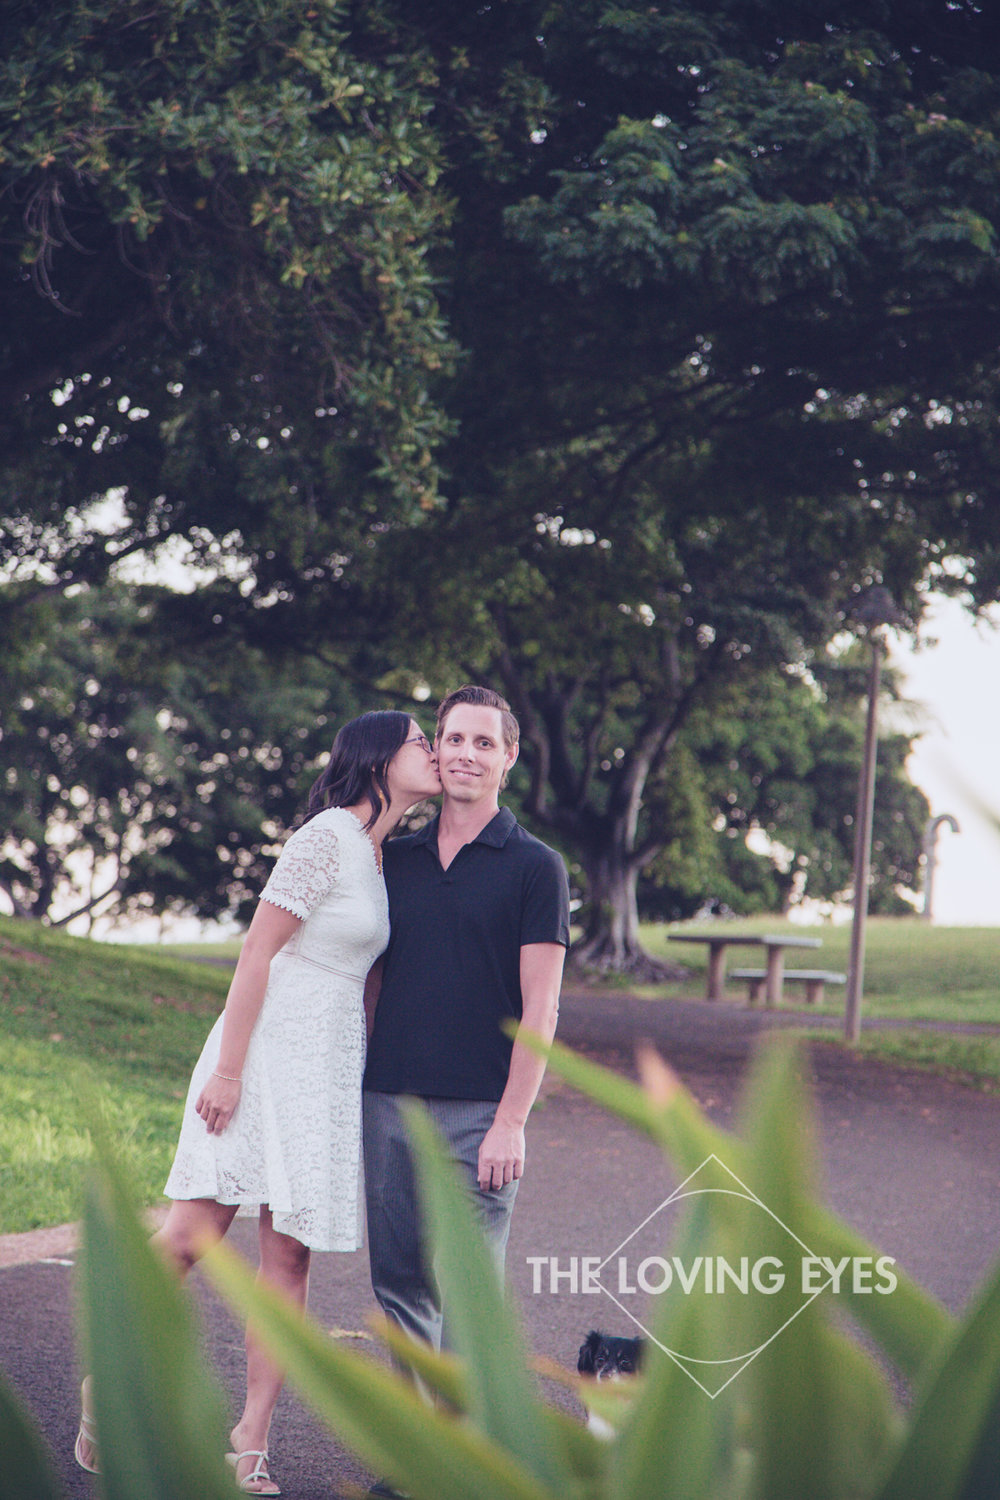 Engagement photo in the park in Hawaii